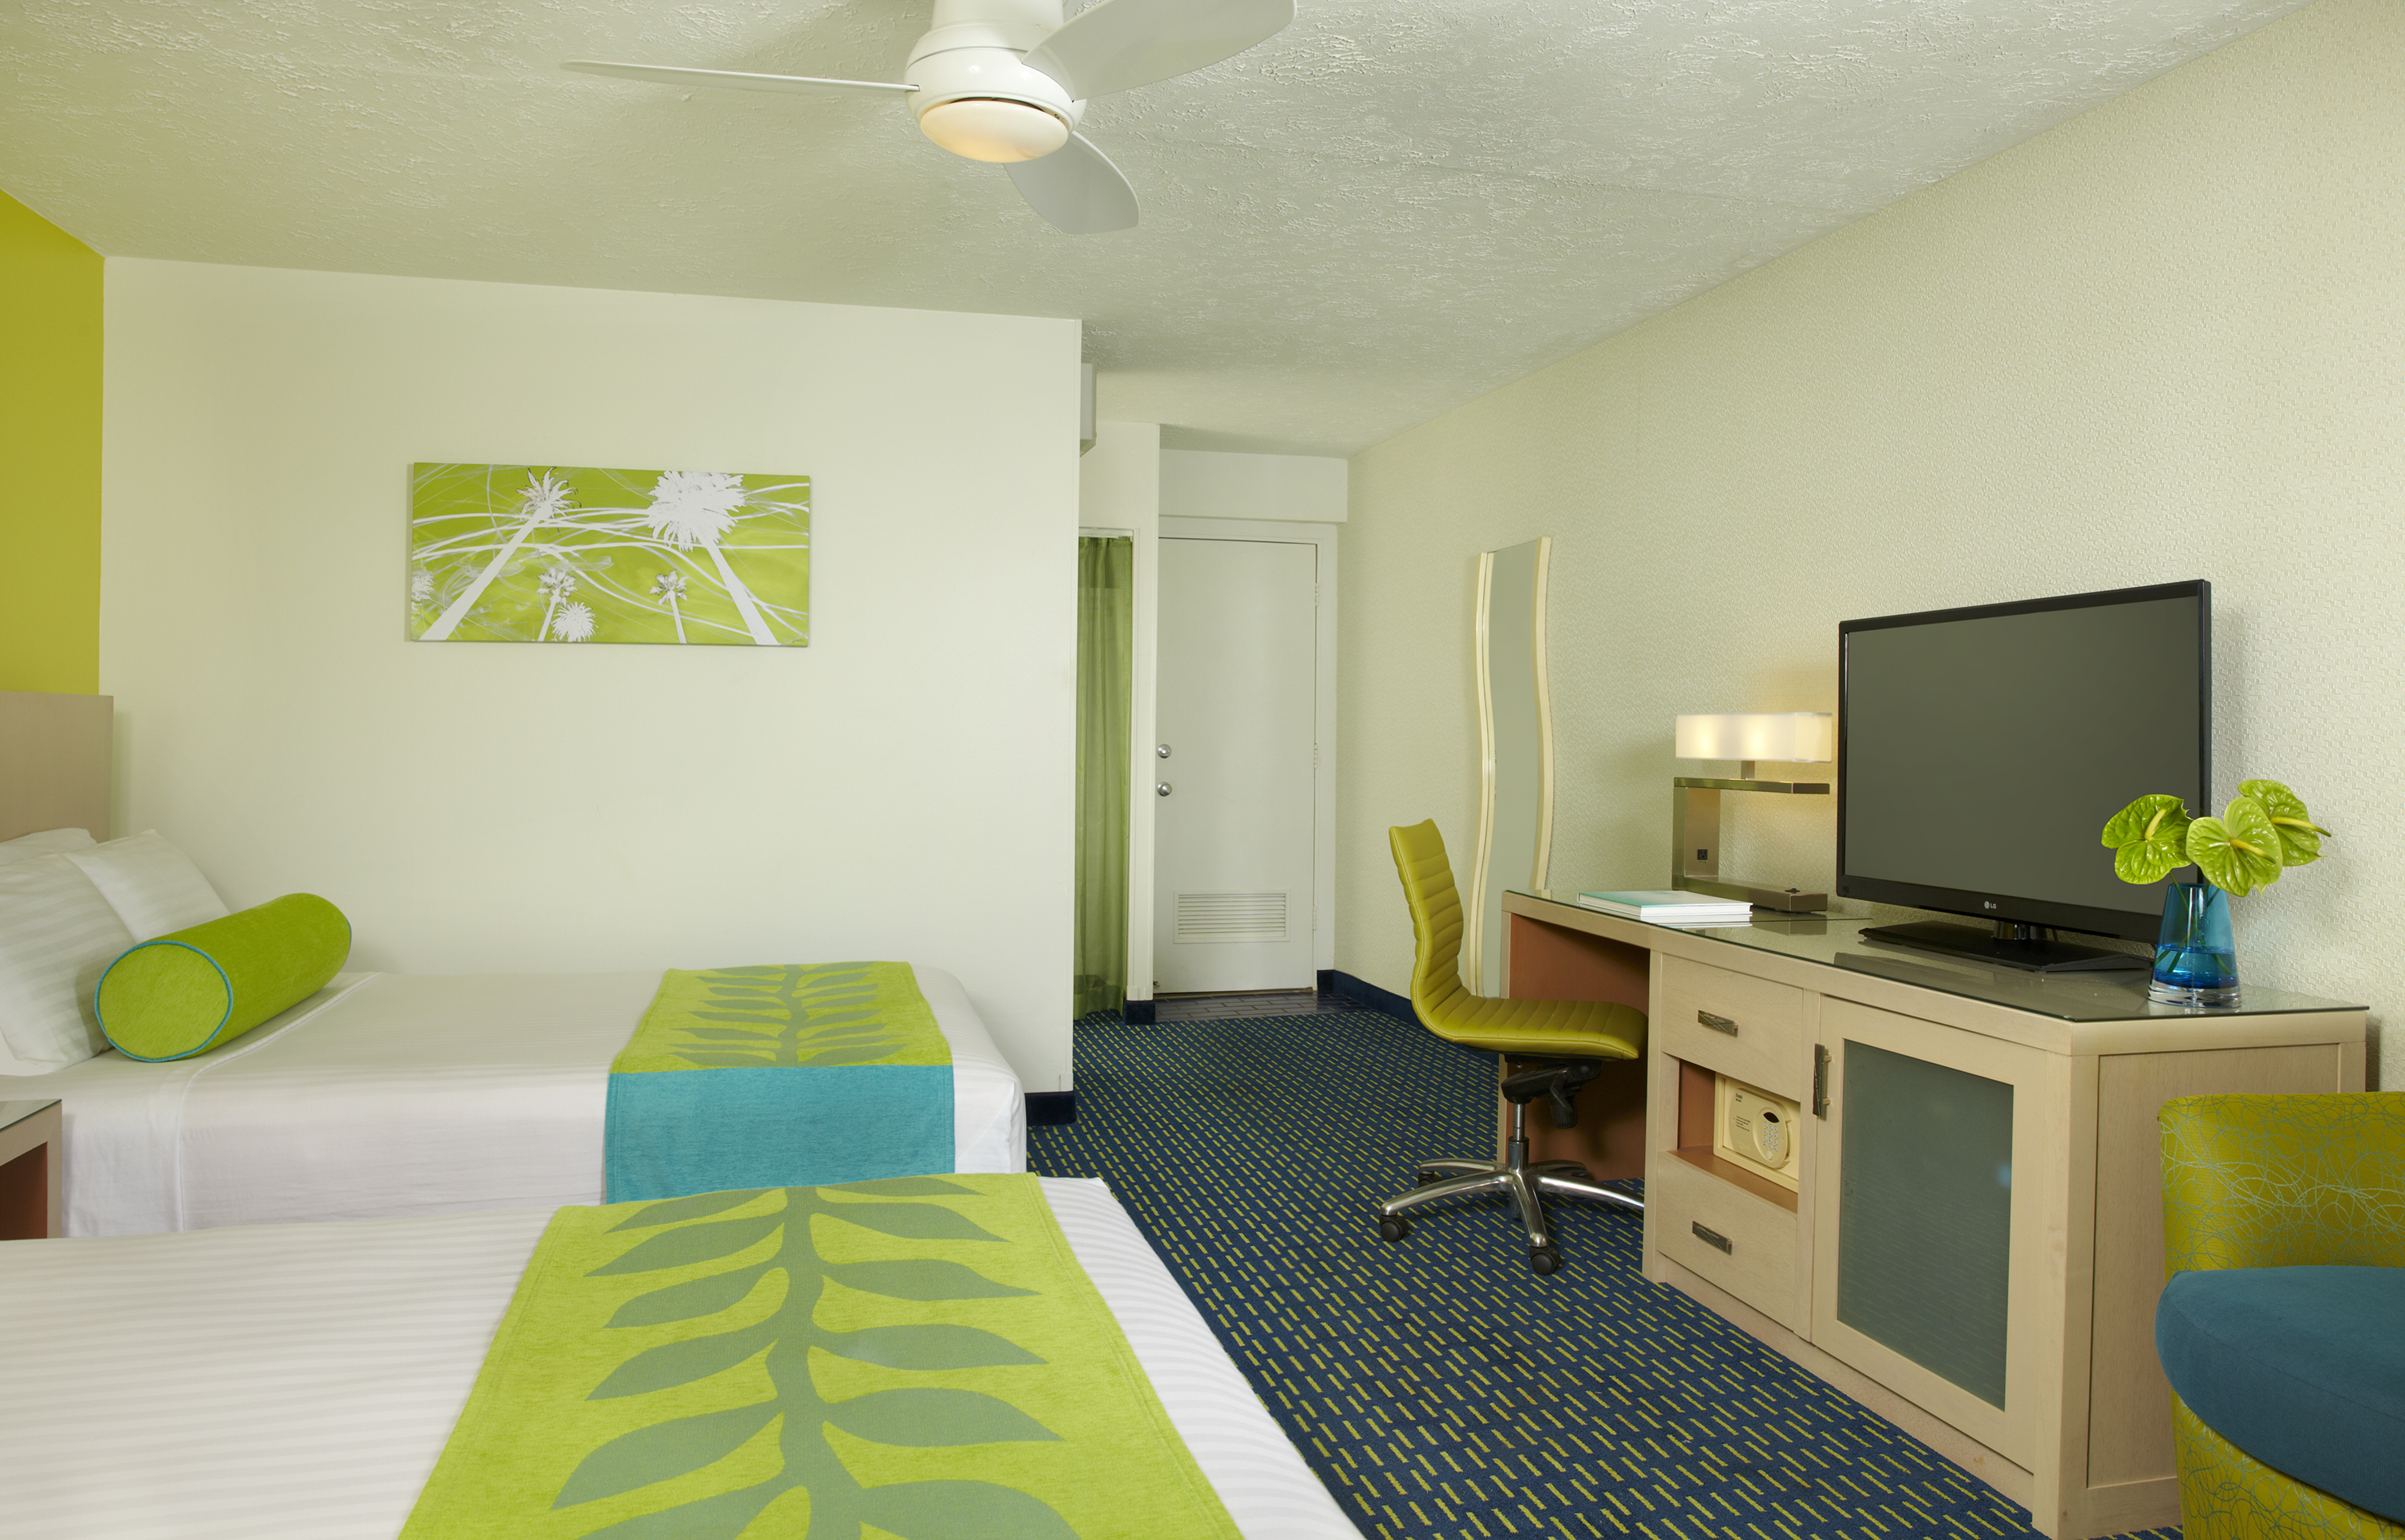 King size bed, TV and table decoration of the room